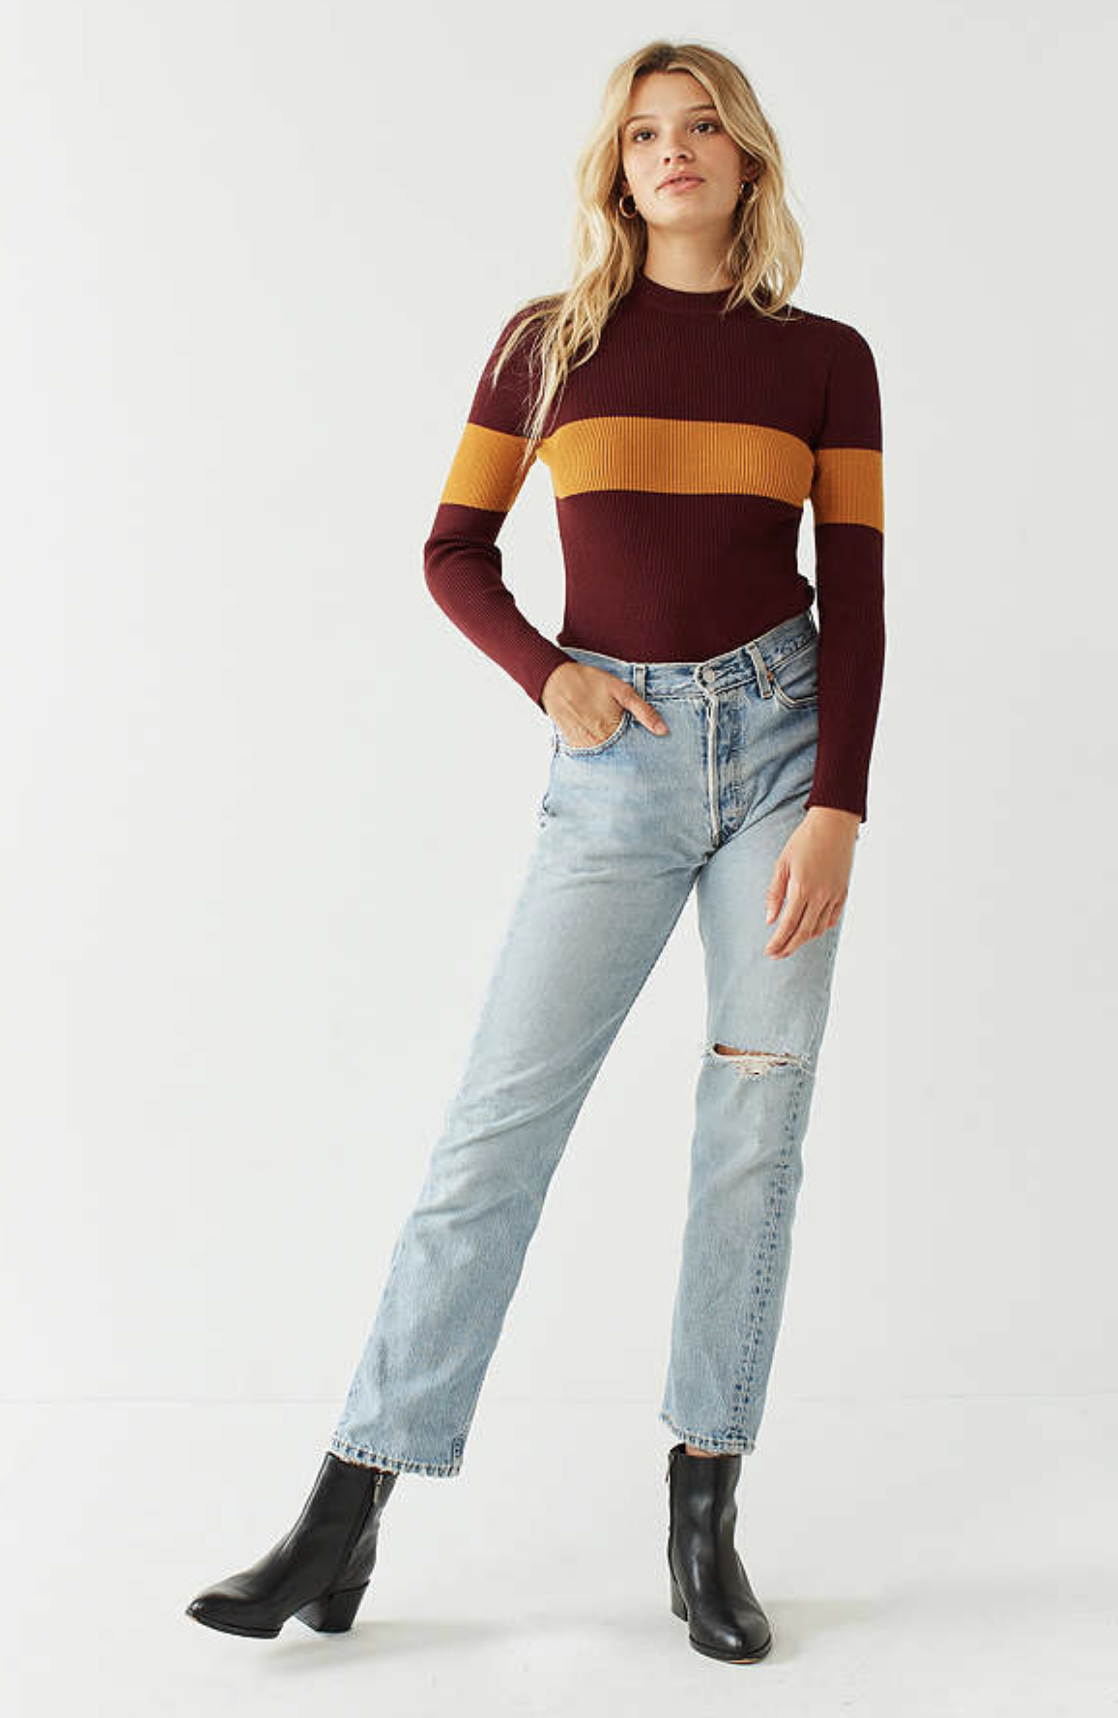 URBAN OUTFITTERS OUT FROM UNDER COLORBLOCKED SWEATER BODYSUIT ($59)